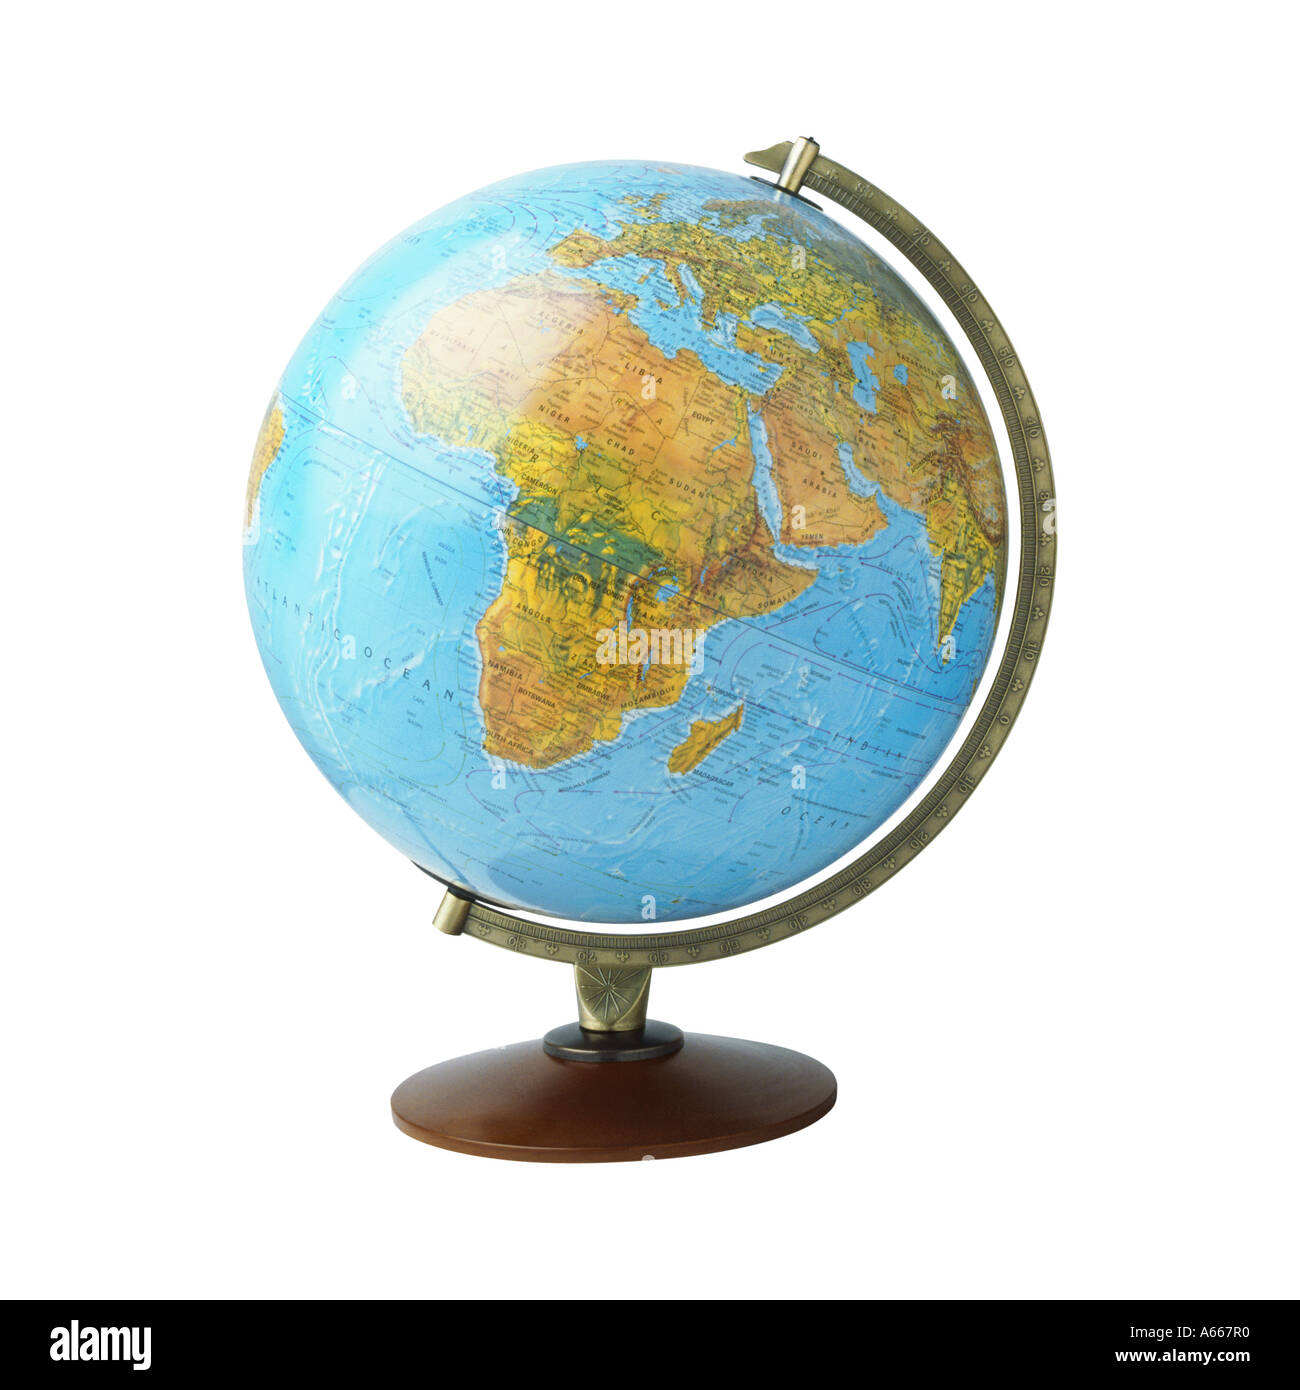 A globe showing Africa - Stock Image